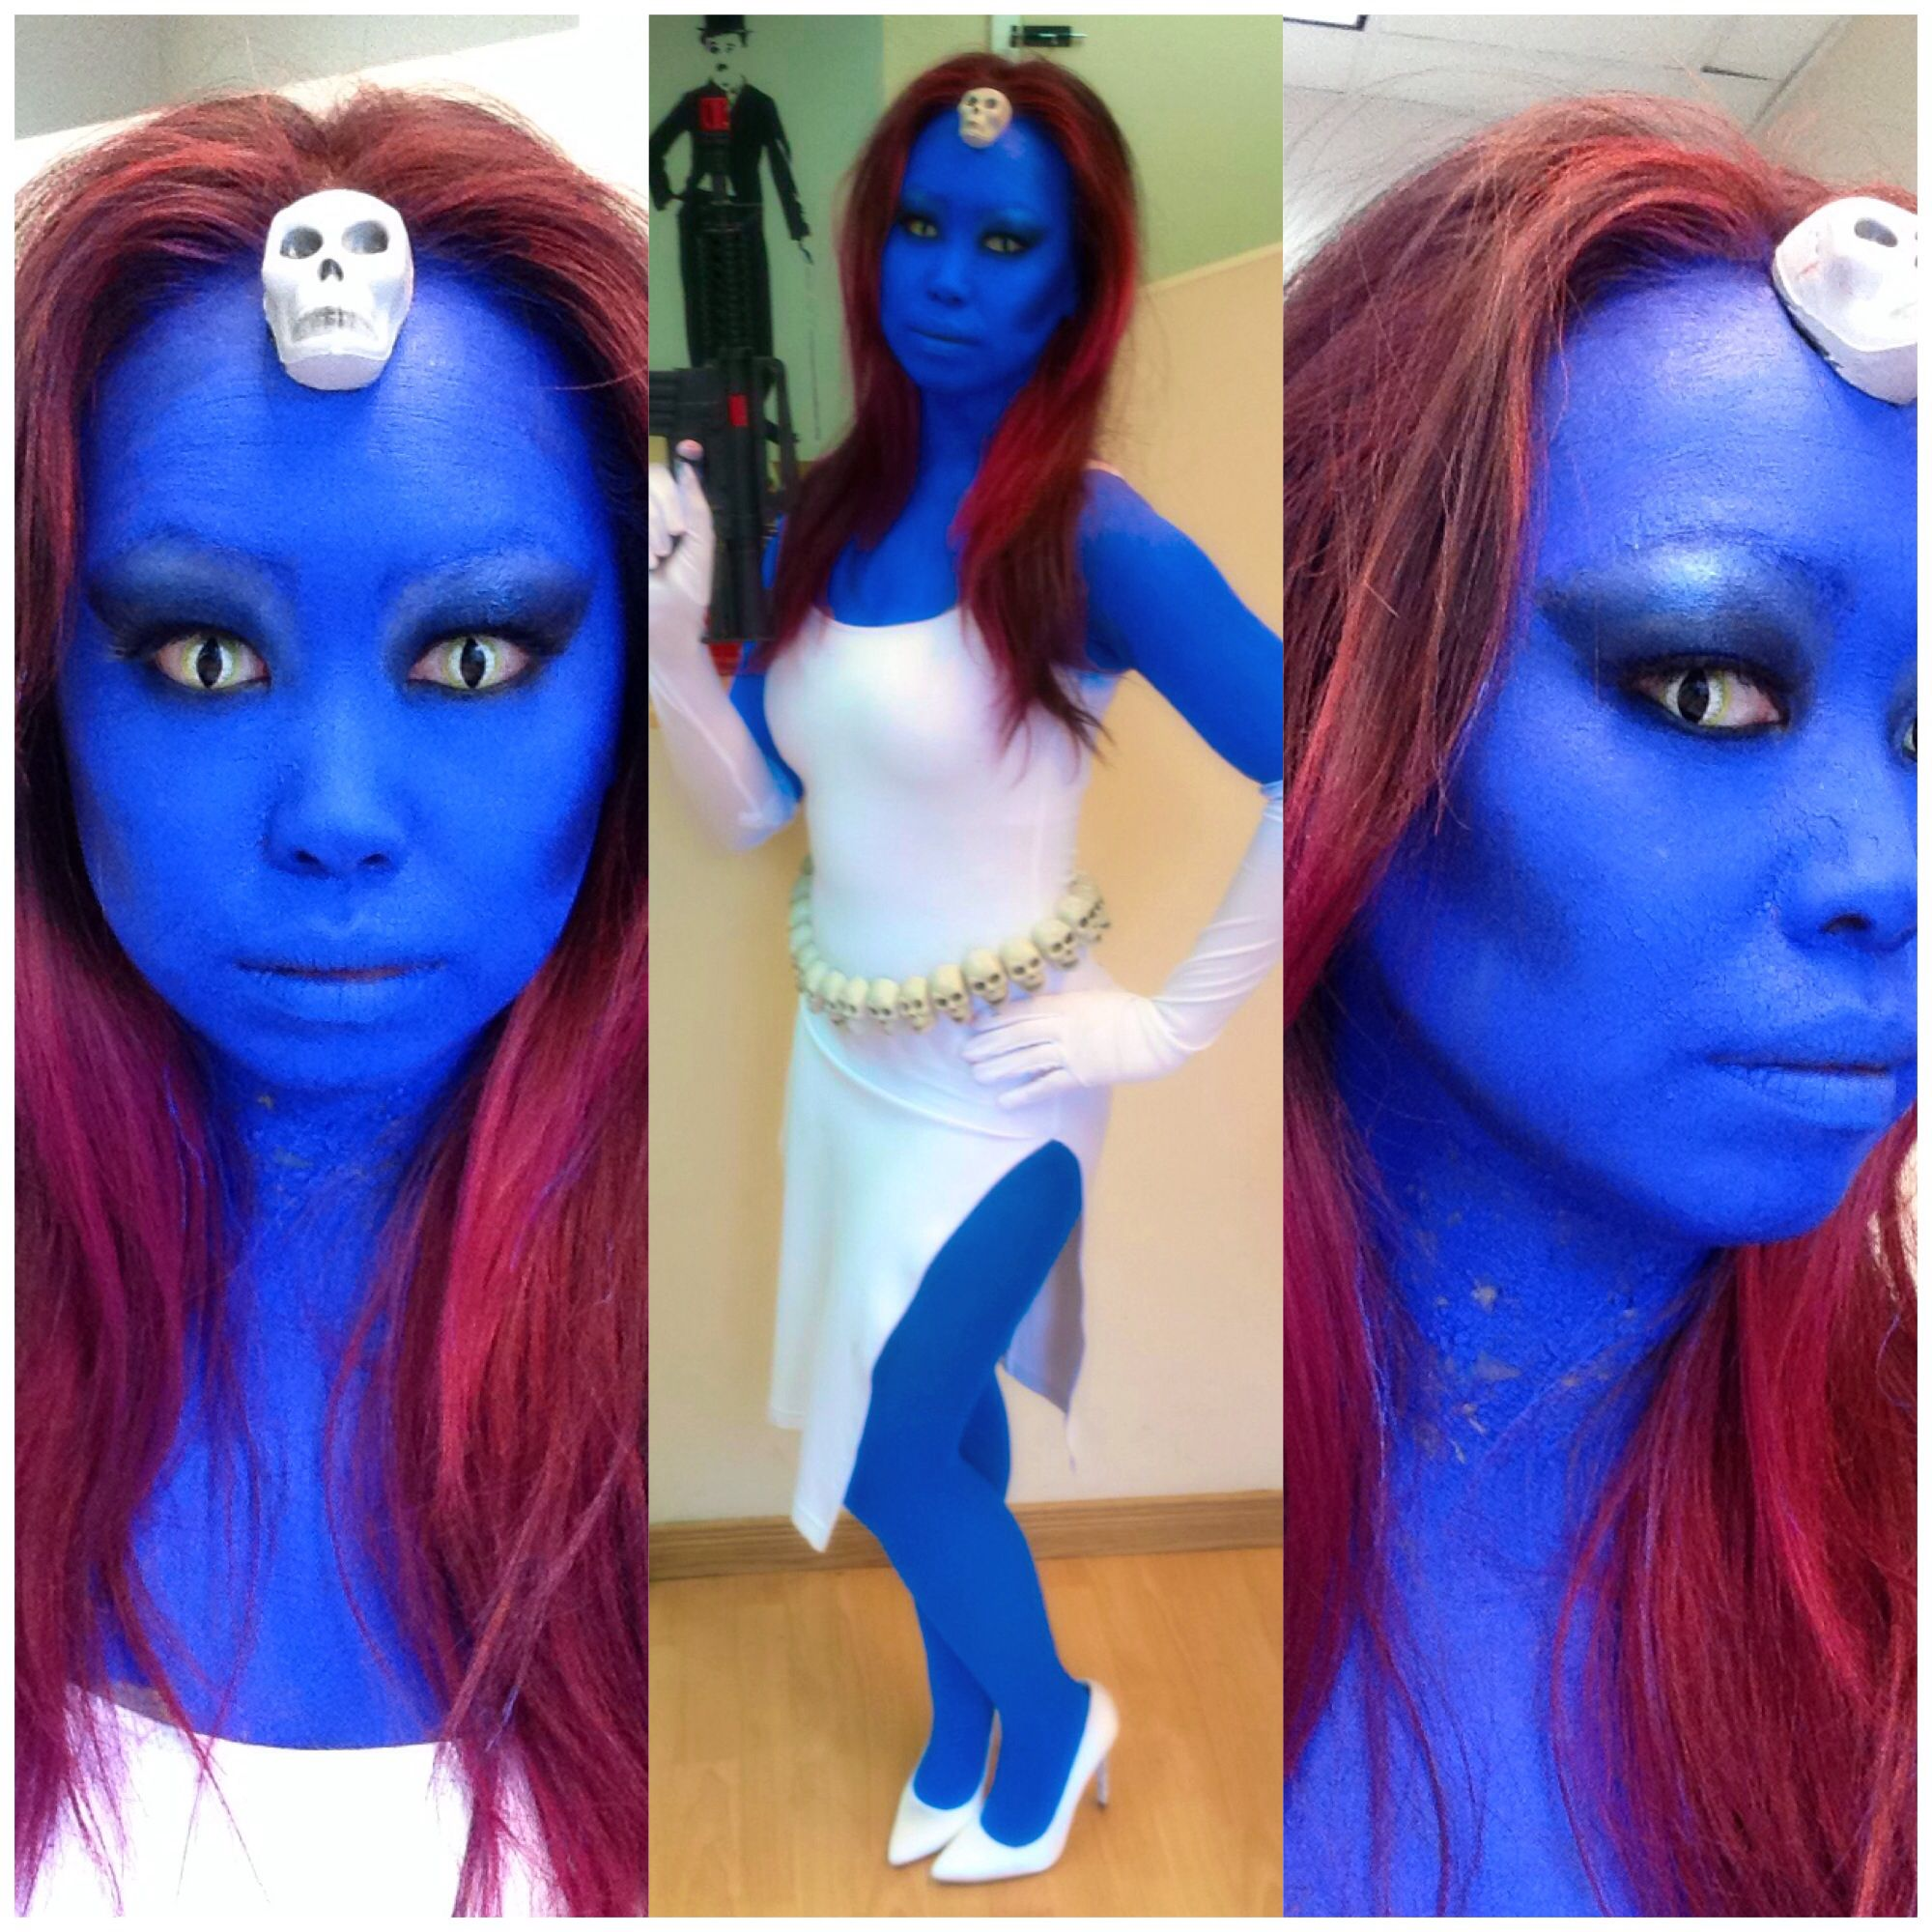 Costume makeup by Stay True Beauty. Our version of Mystique from X-men Comics. #Halloween2014 #DIY #Skeleton Belt